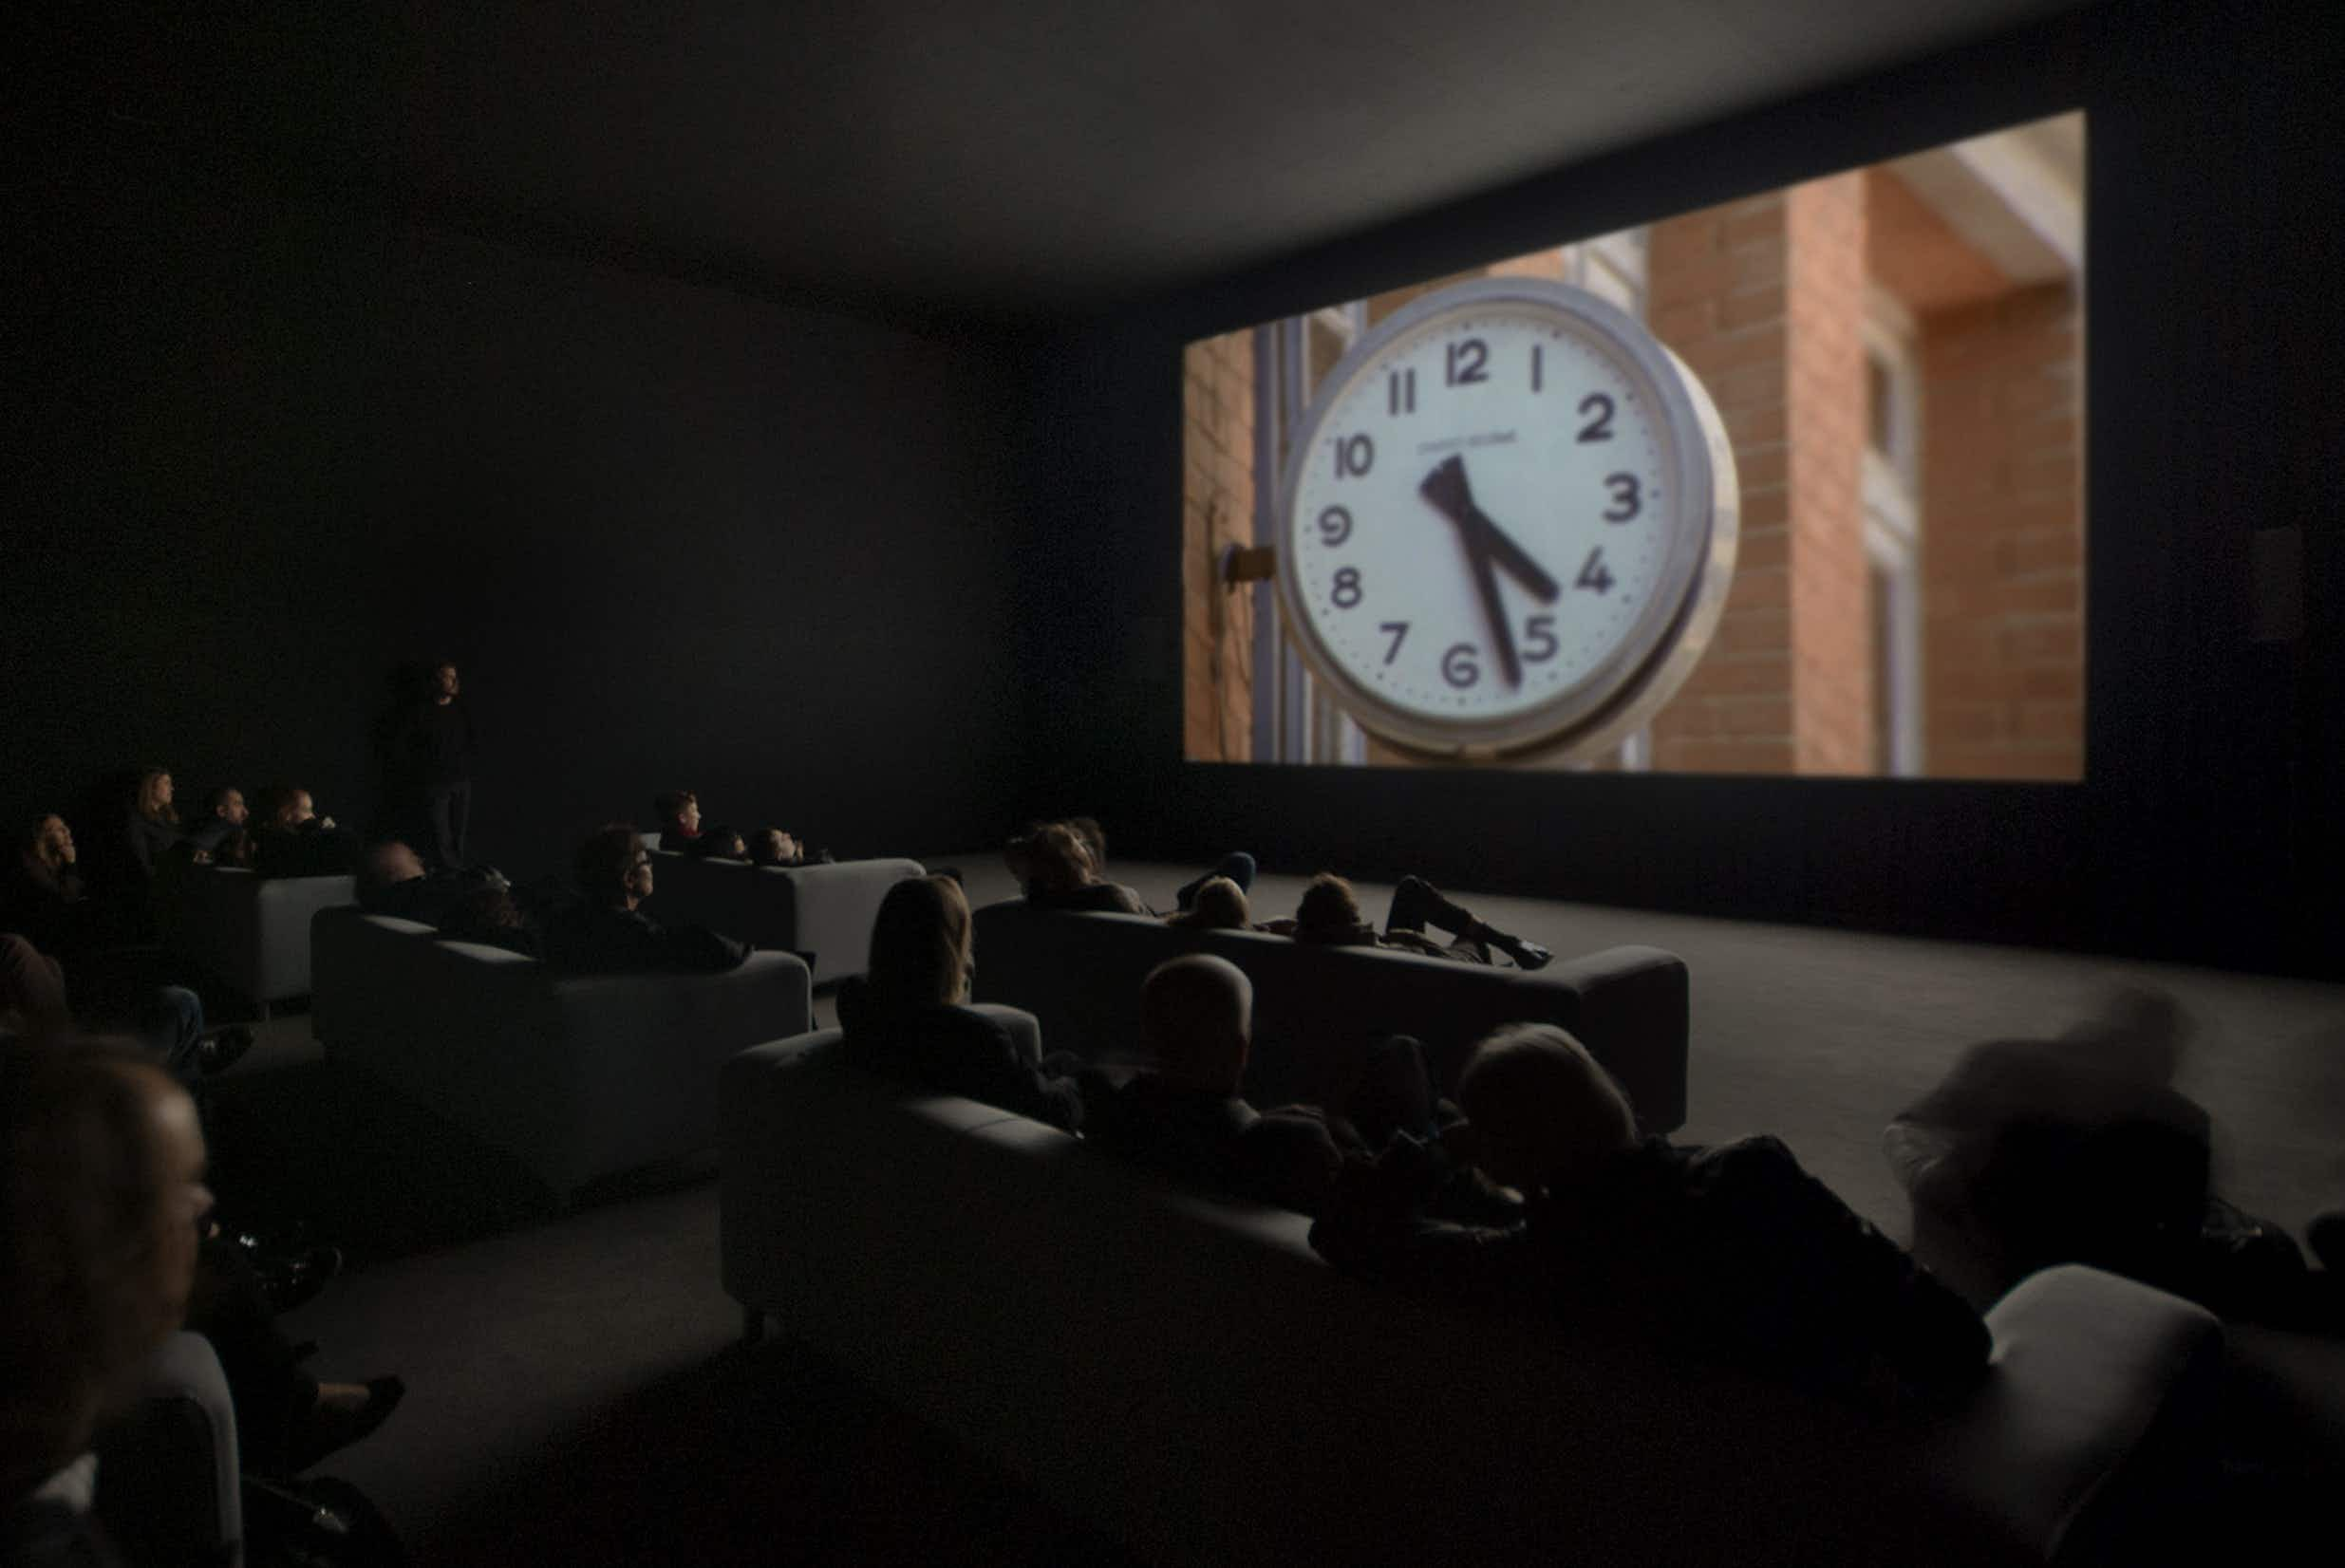 Spend 24 hours watching a hypnotic video installation at London's Tate Modern